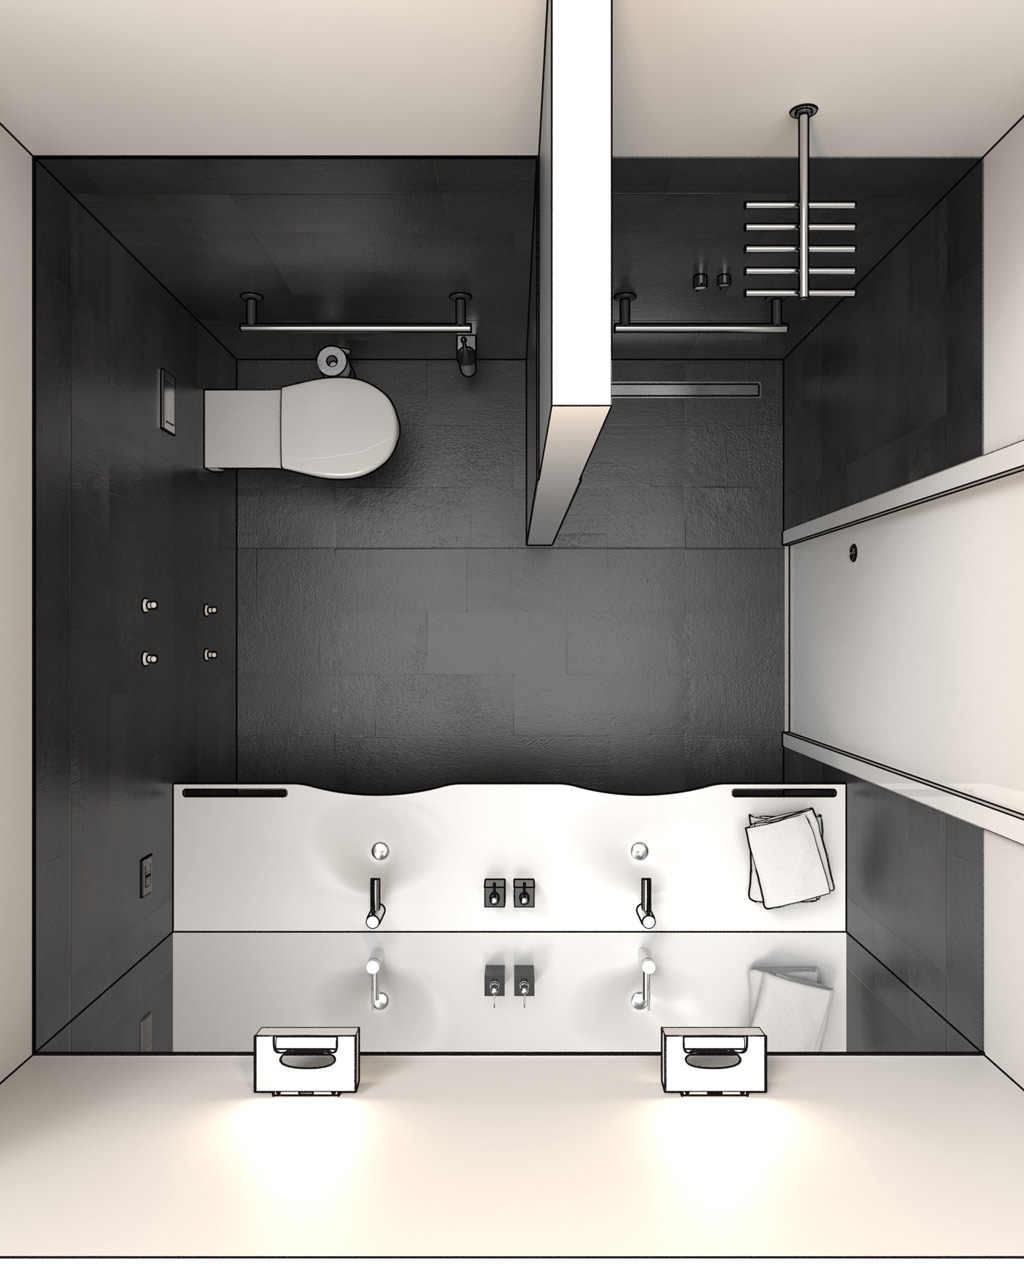 Disabled bathroom design dwg drawings in 3d - Planner bagno 3d ...